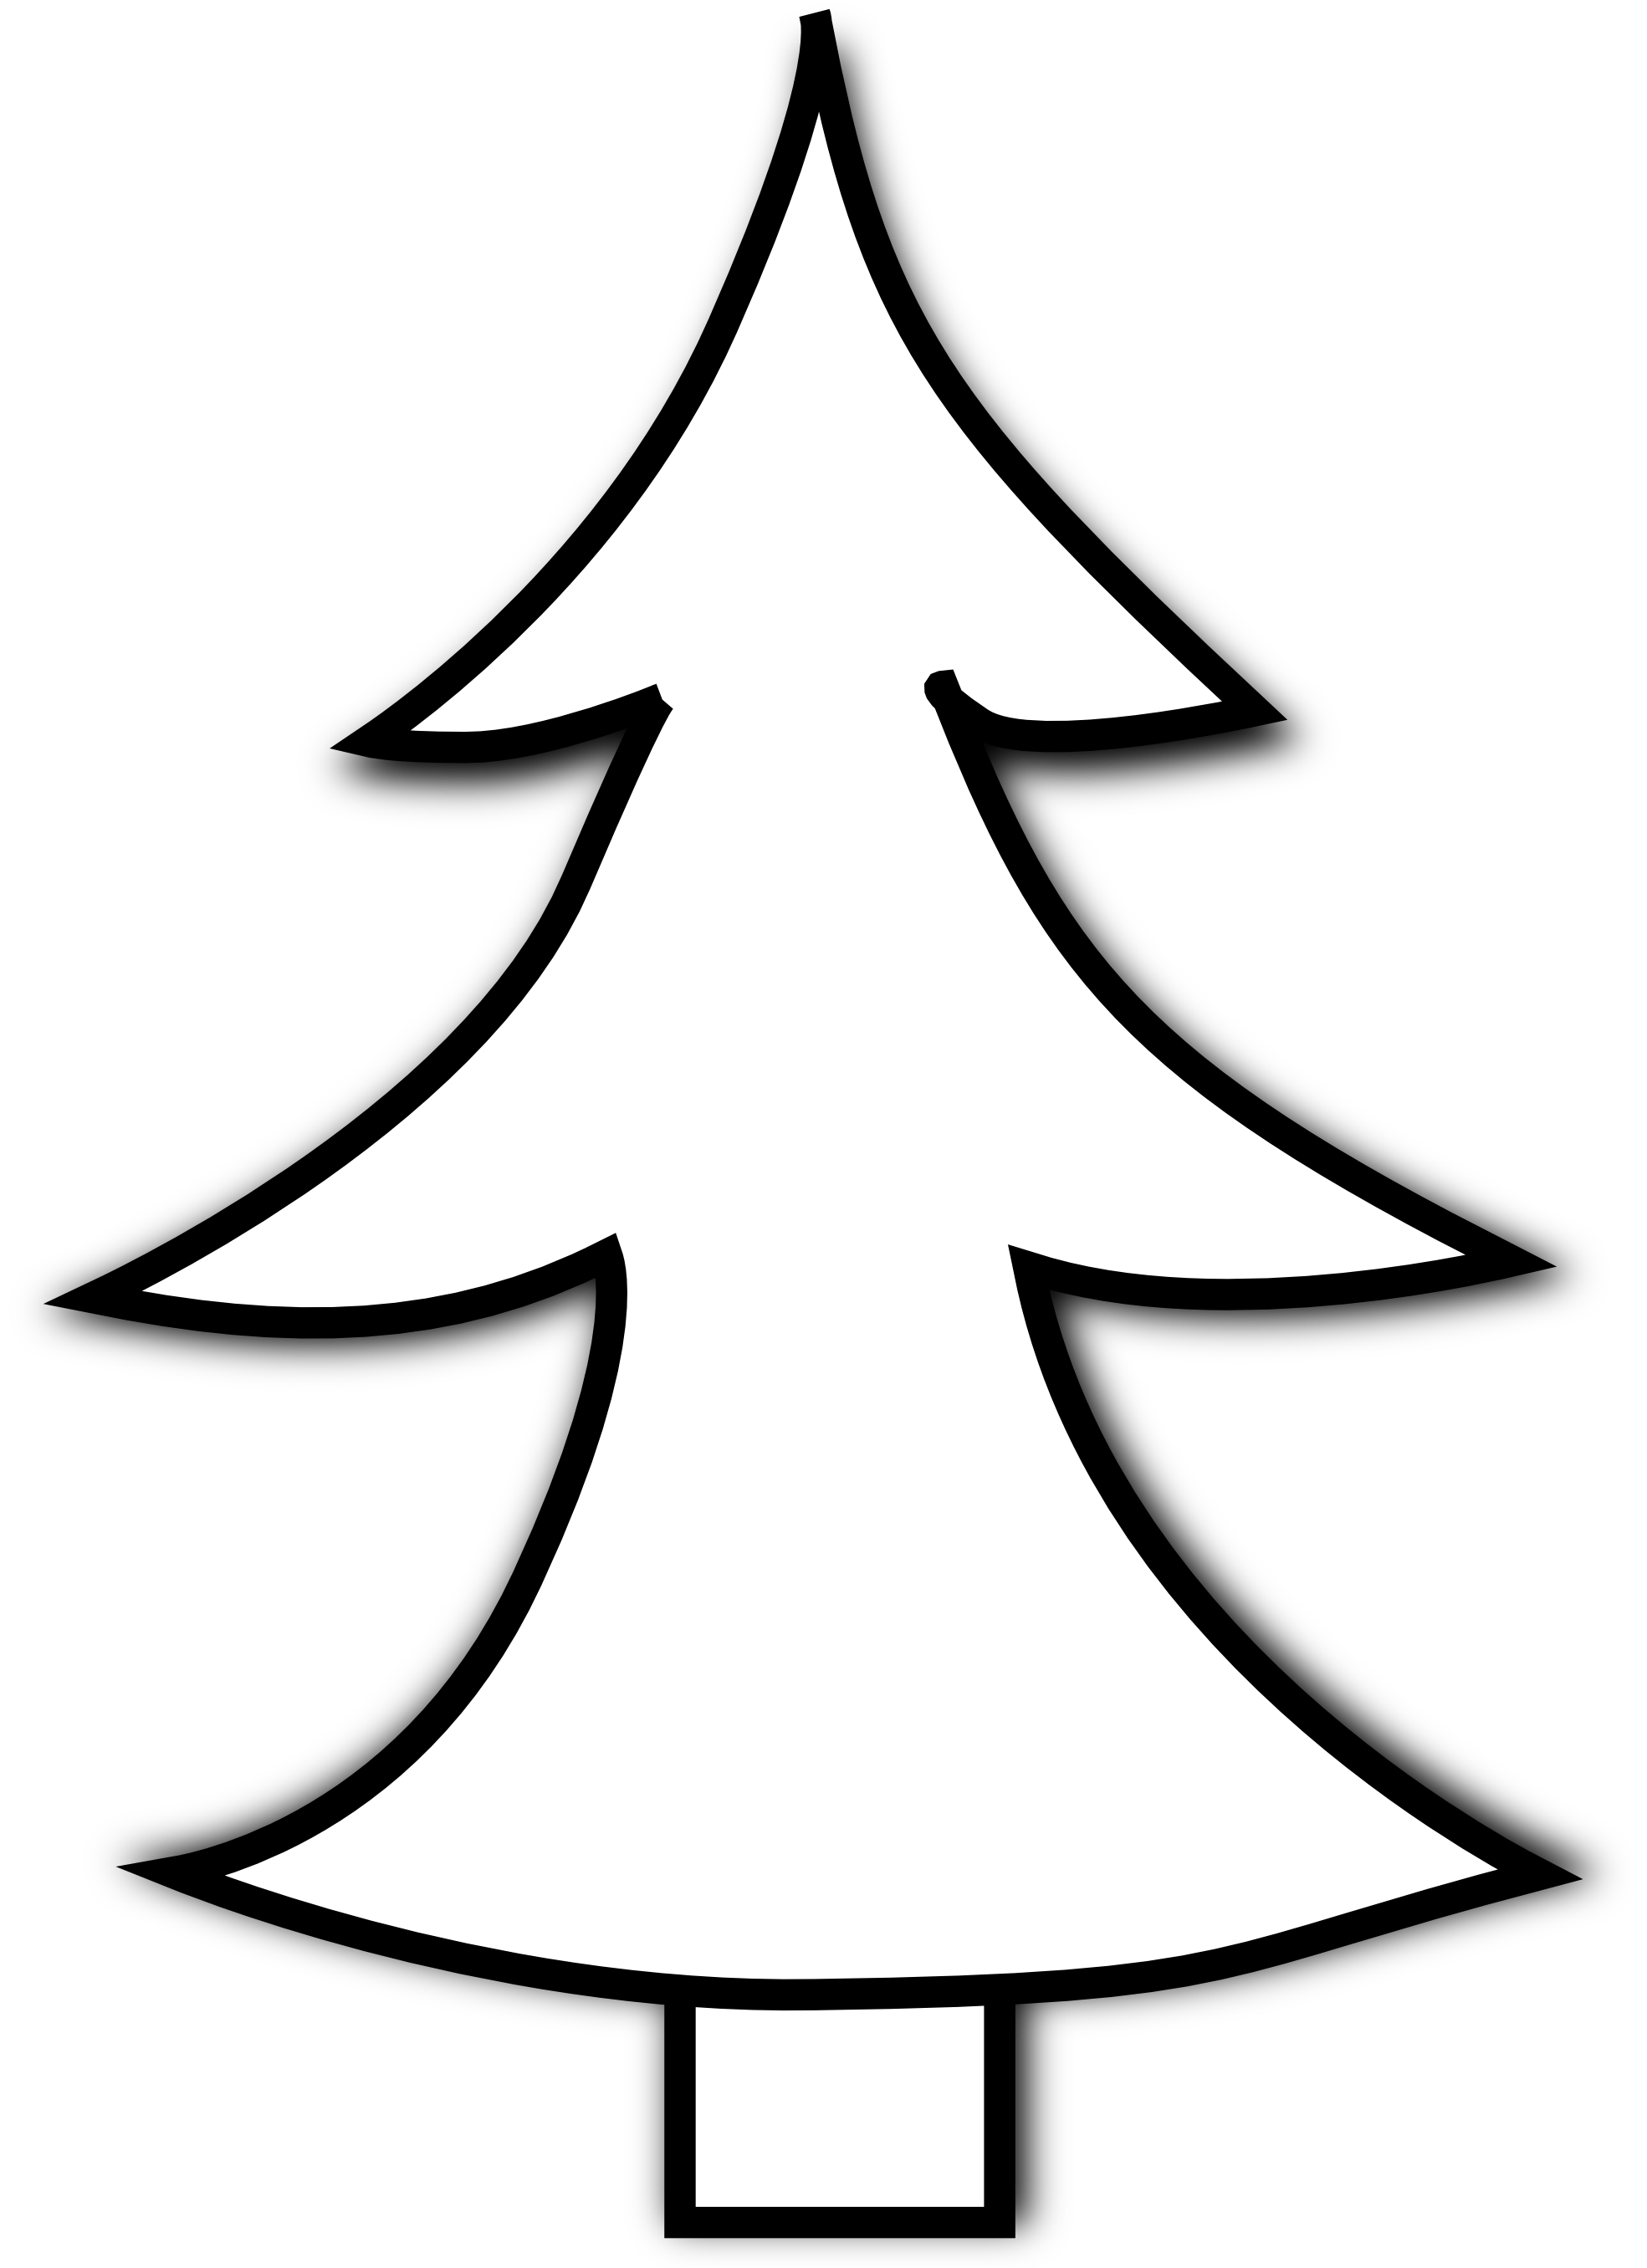 Christmas Tree Clip Art Black - Christmas Tree Clip Art Black And White